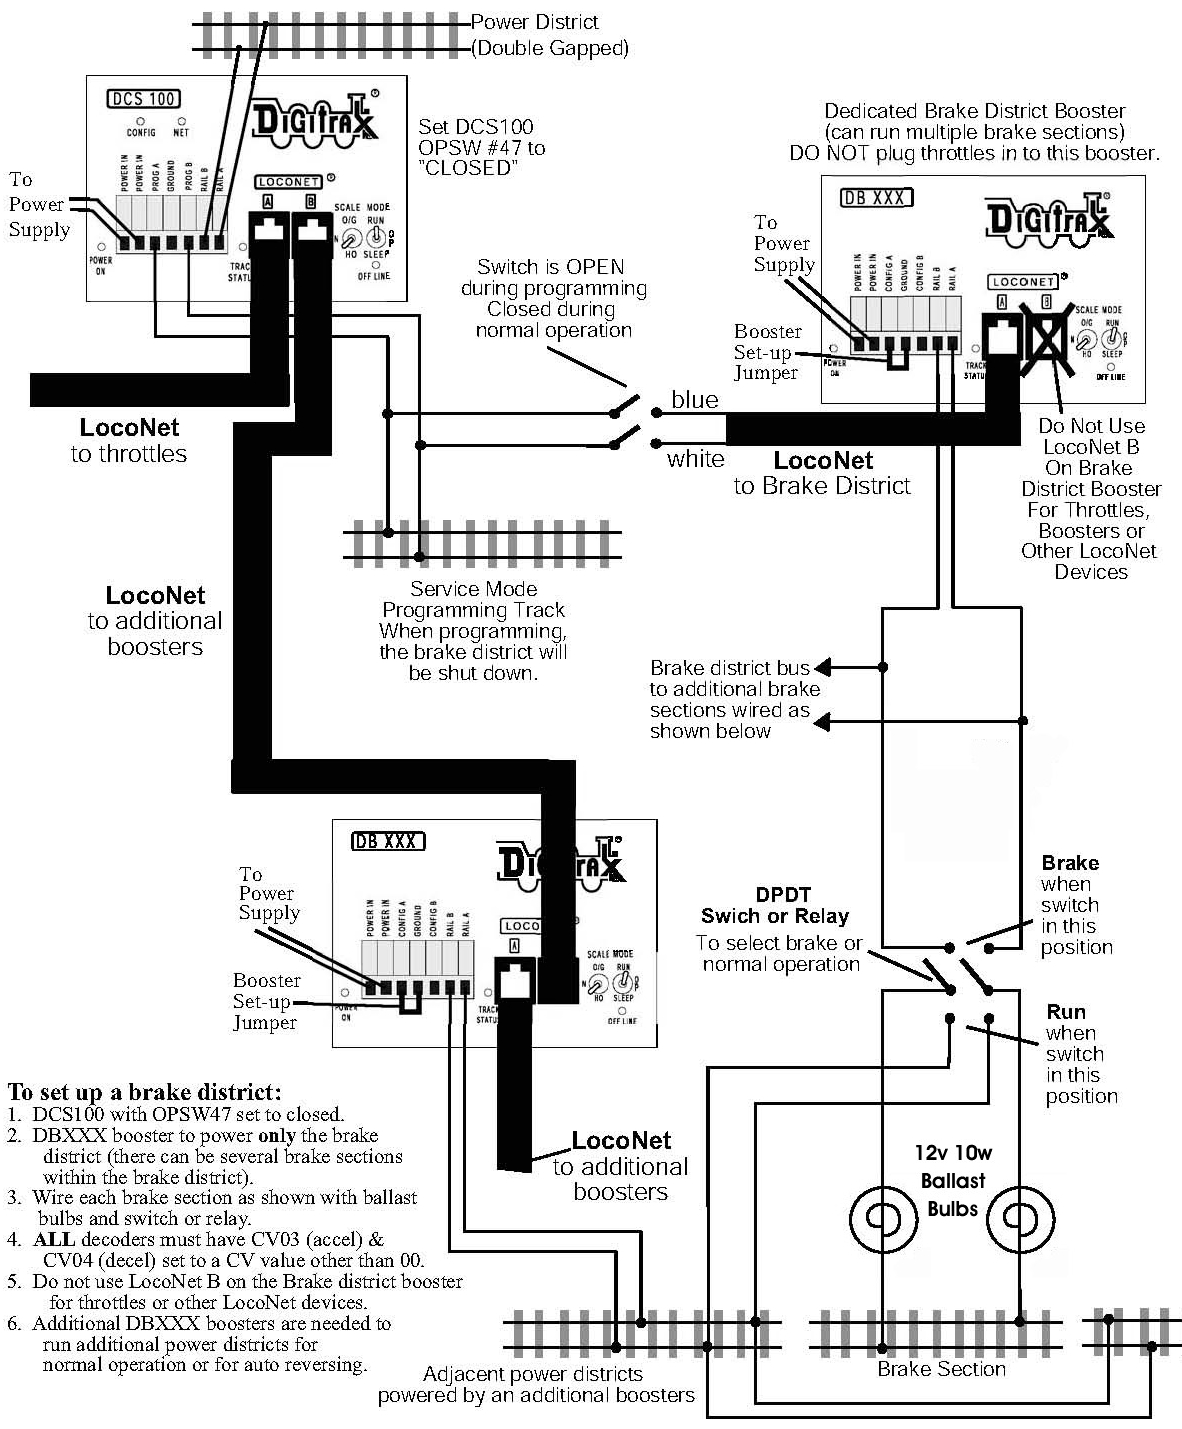 Digitrax Dcc Wiring Diagram